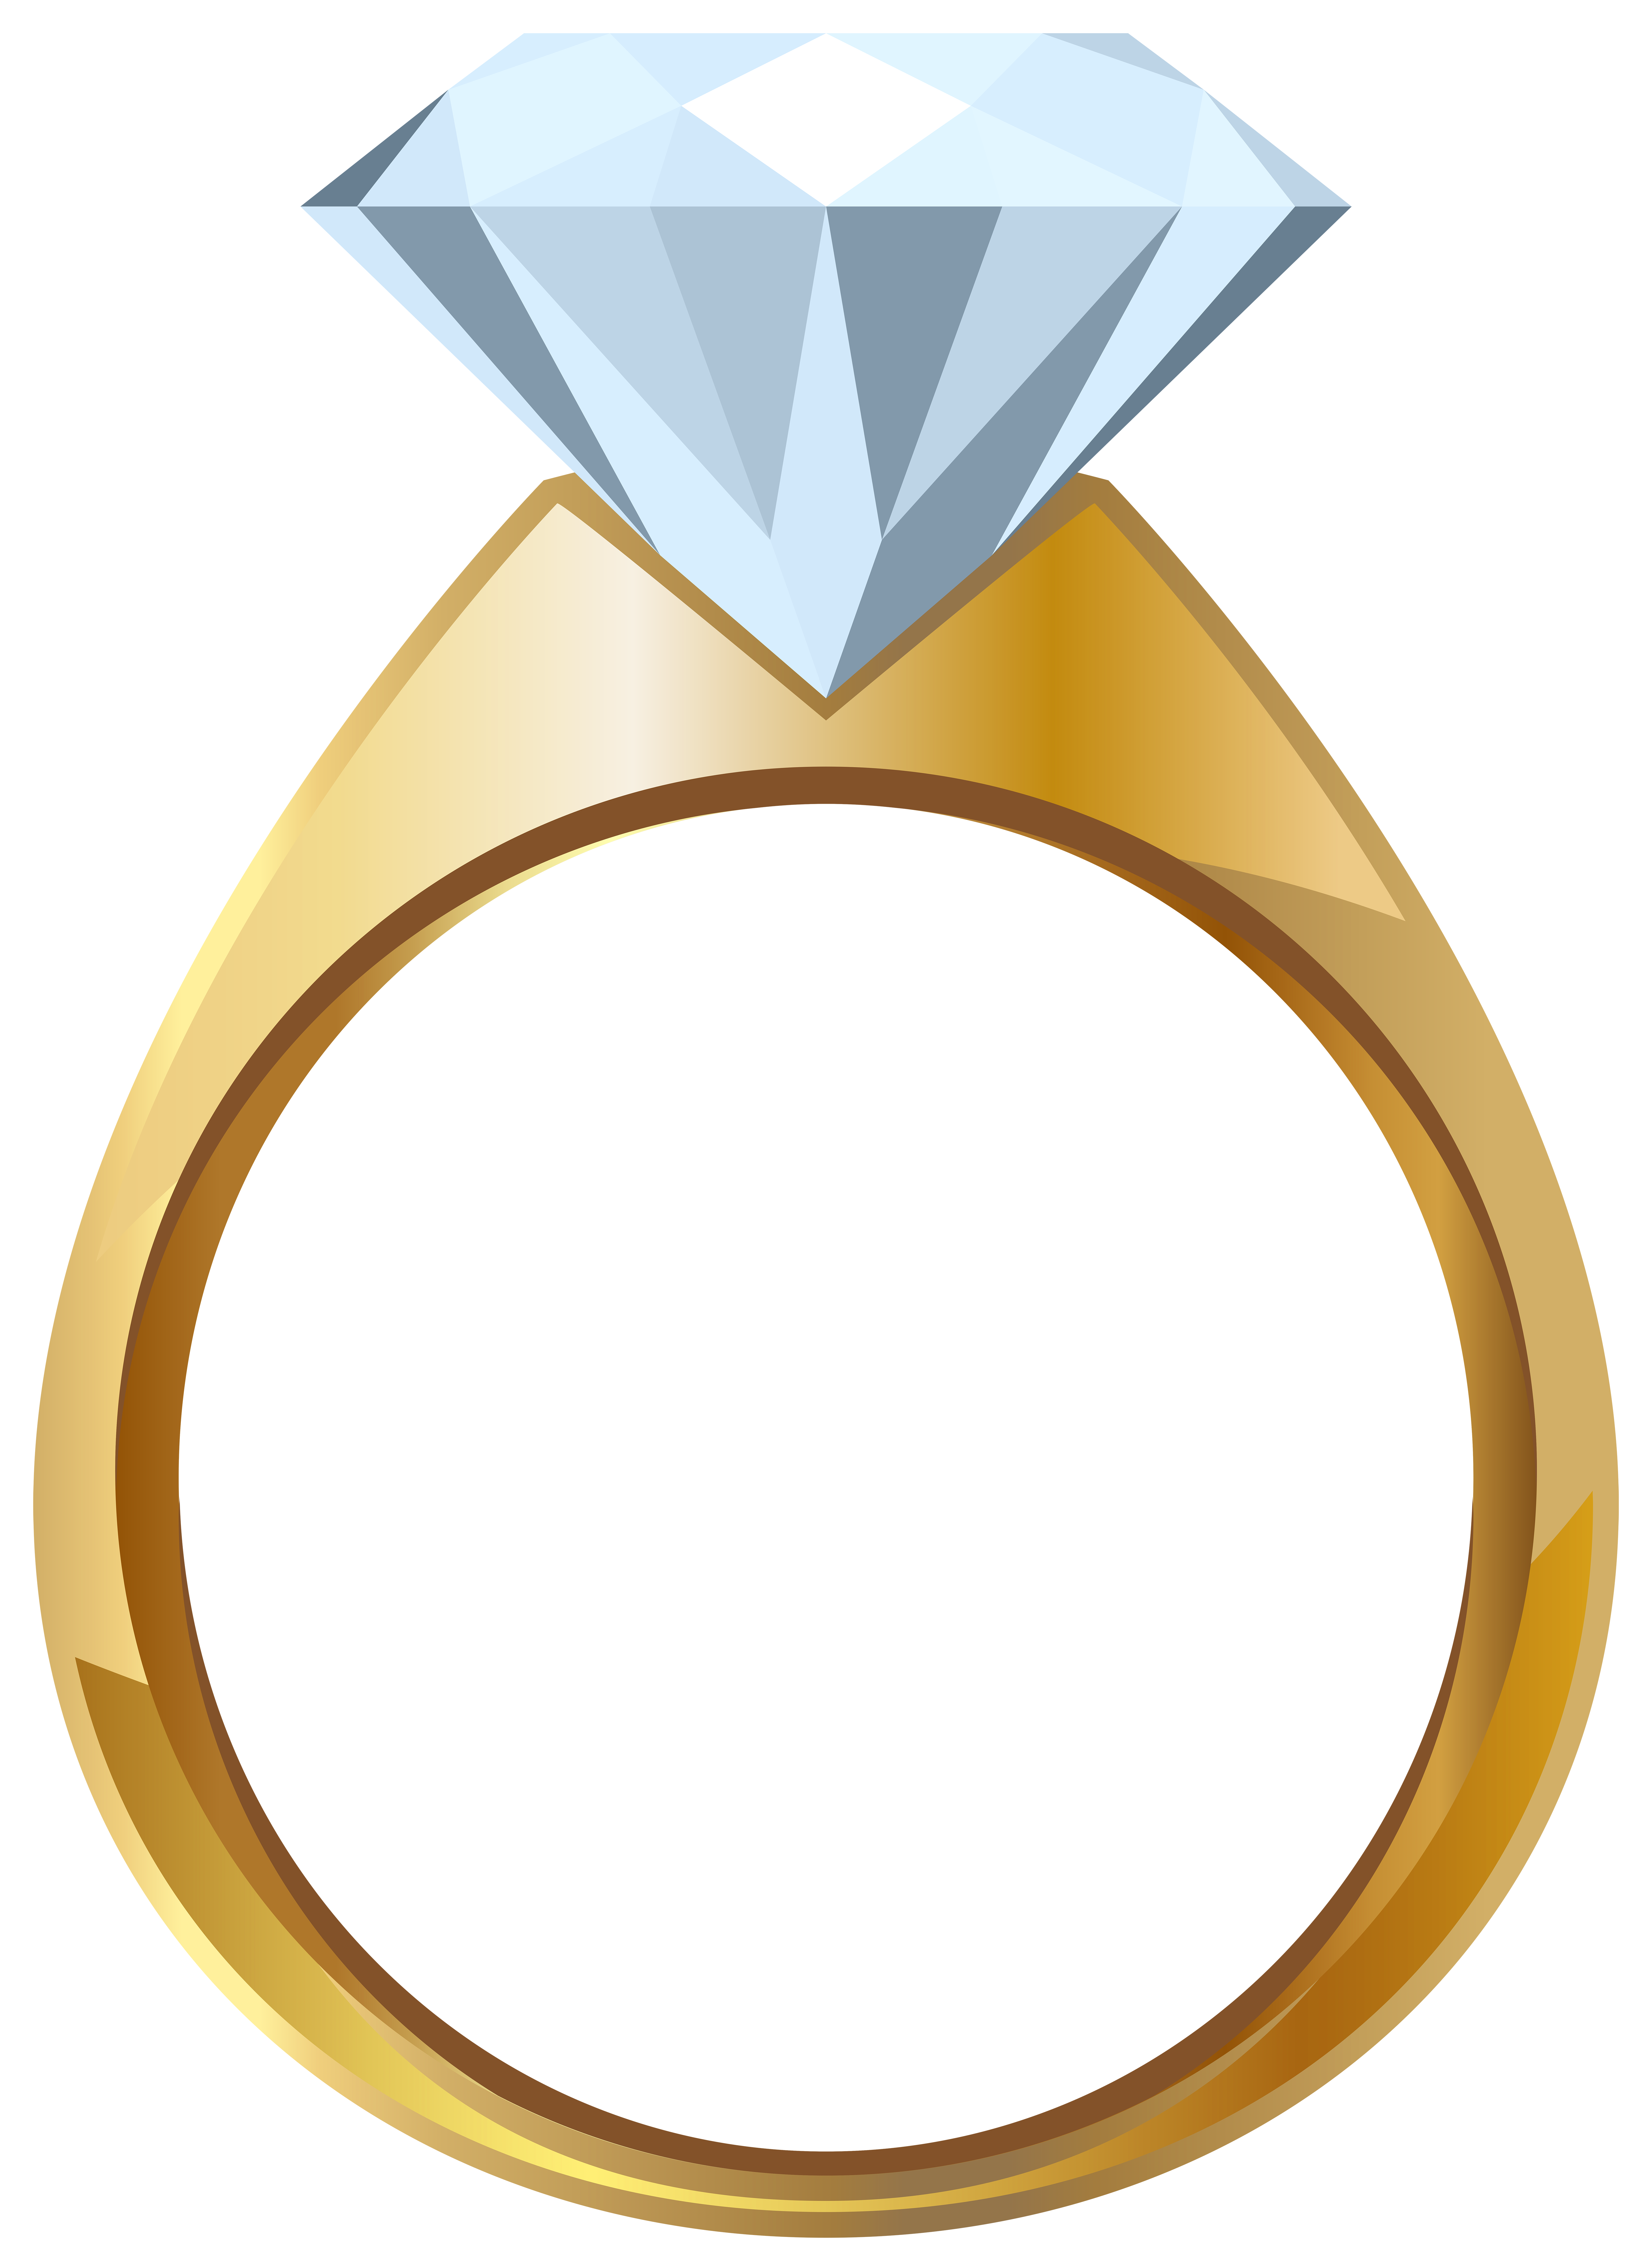 Gold Engagement Ring PNG Transparent Clip Art Image.